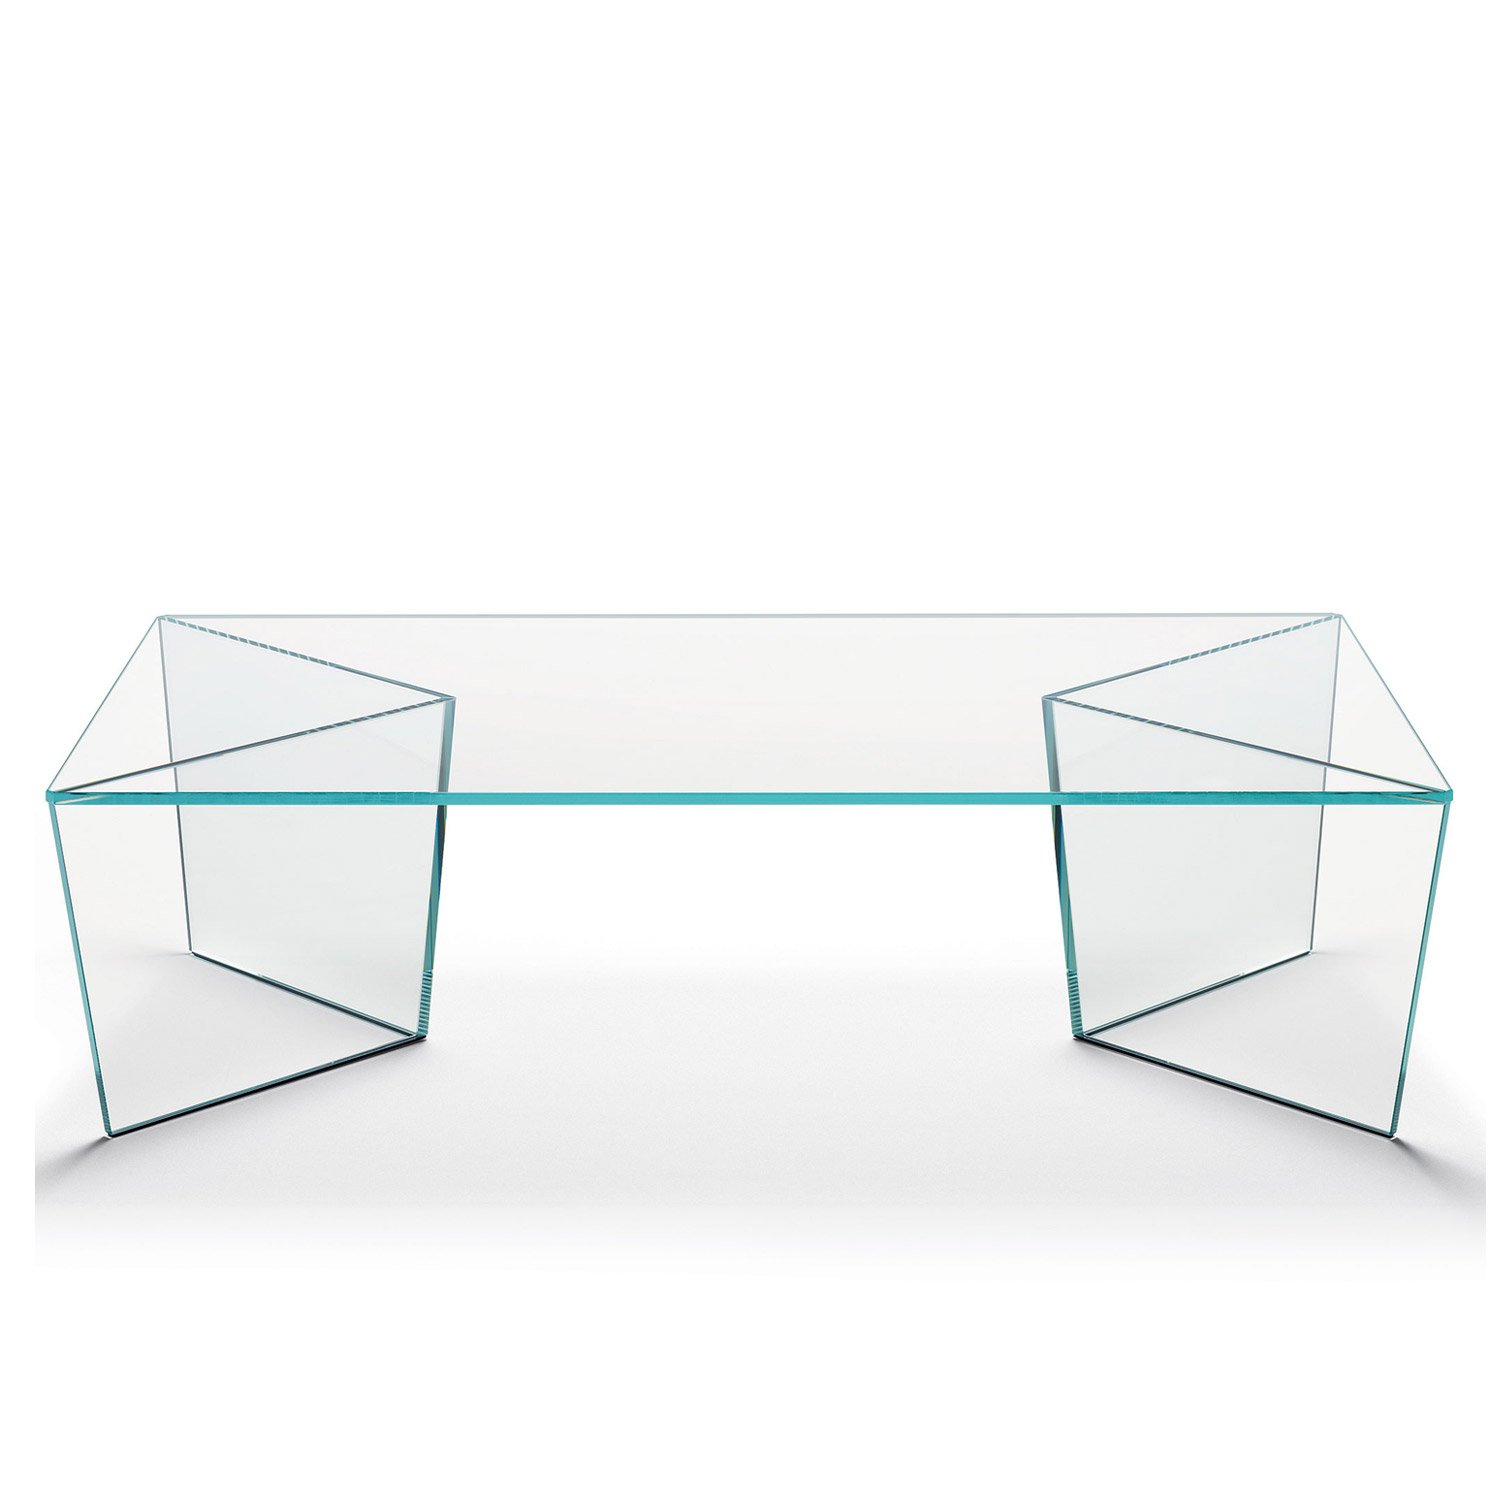 Mirage Rectangular Glass Coffee table by Tonelli Klarity Glass